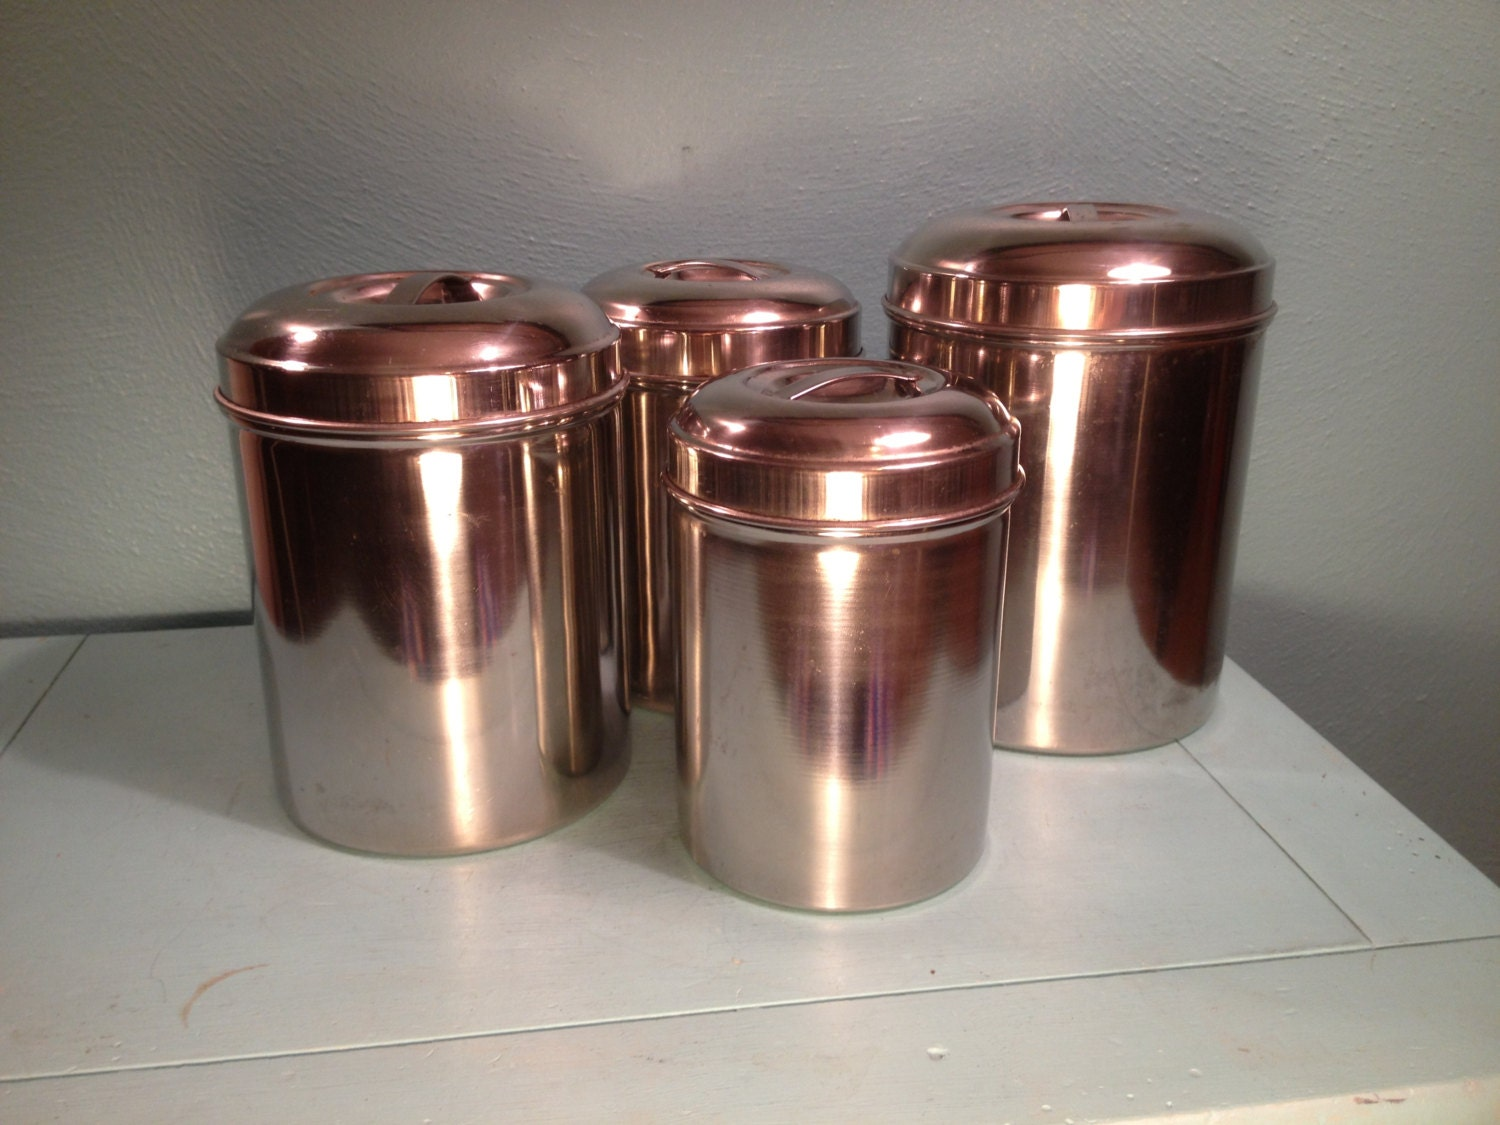 Stainless Steel Canister Set Free Shipping By Andantiques